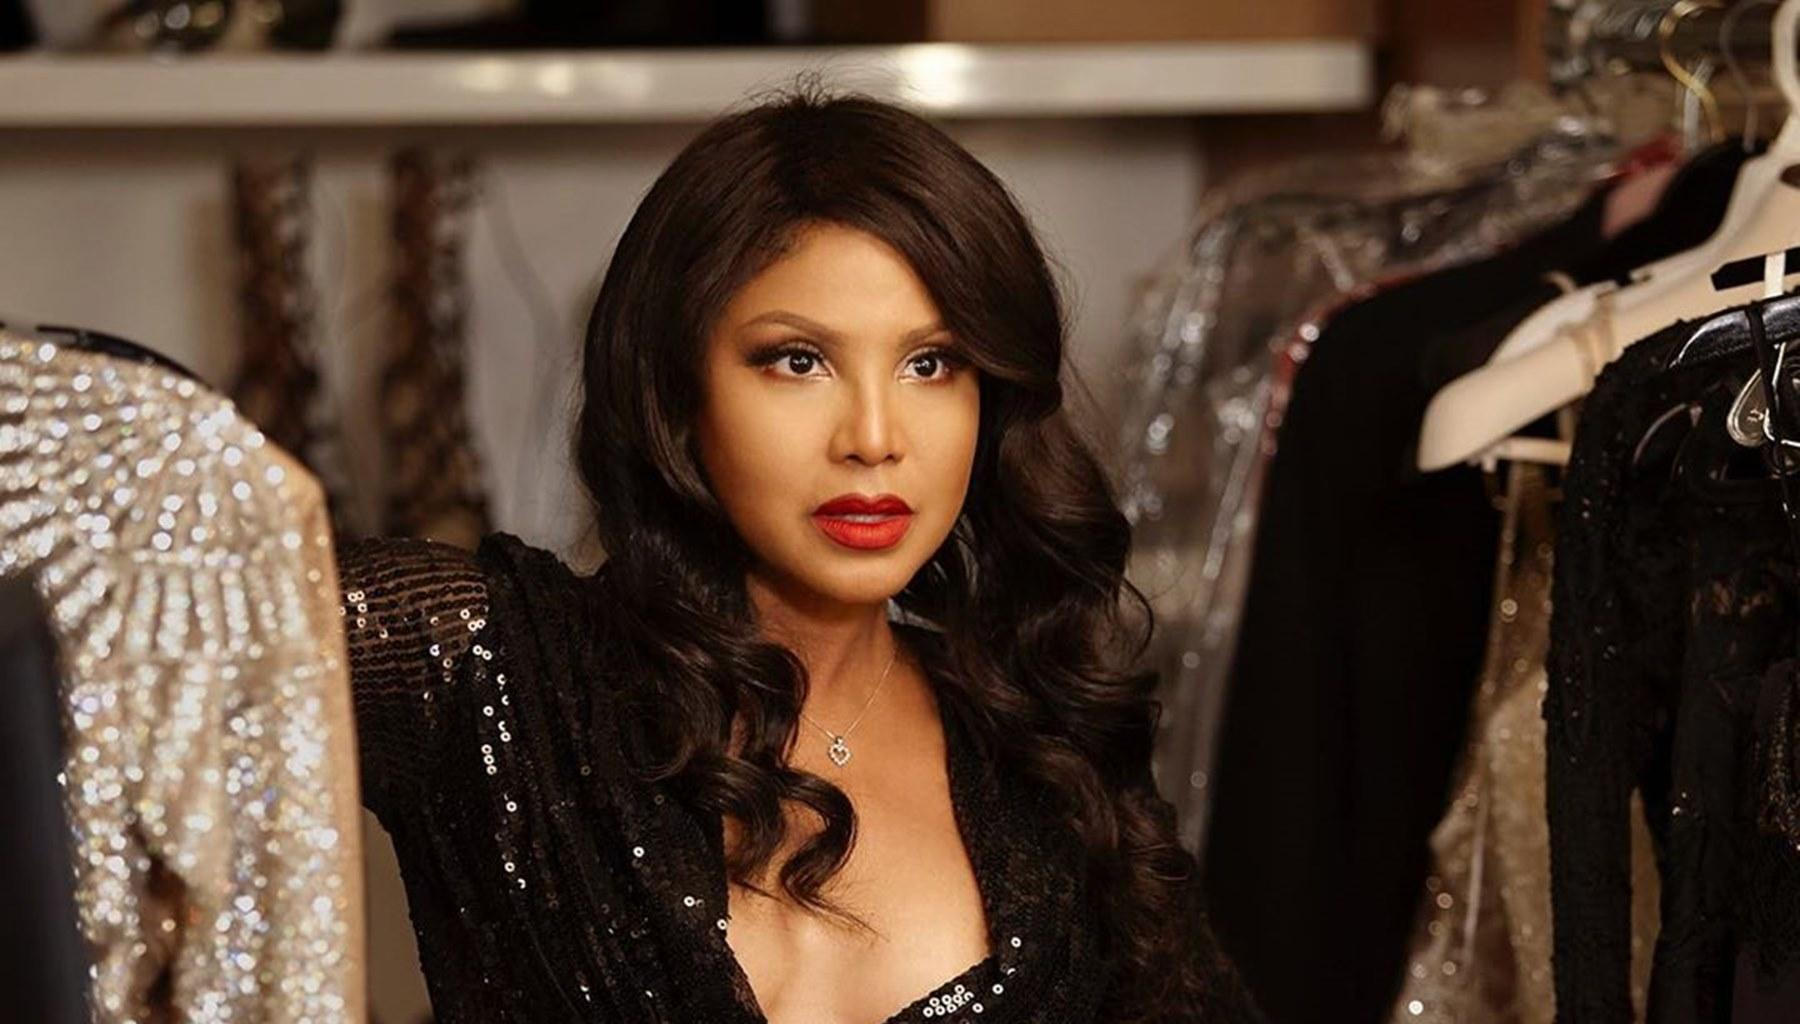 Toni Braxton And Birdman's Secret Is Out Thanks To This Photo Posted By Trina Braxton